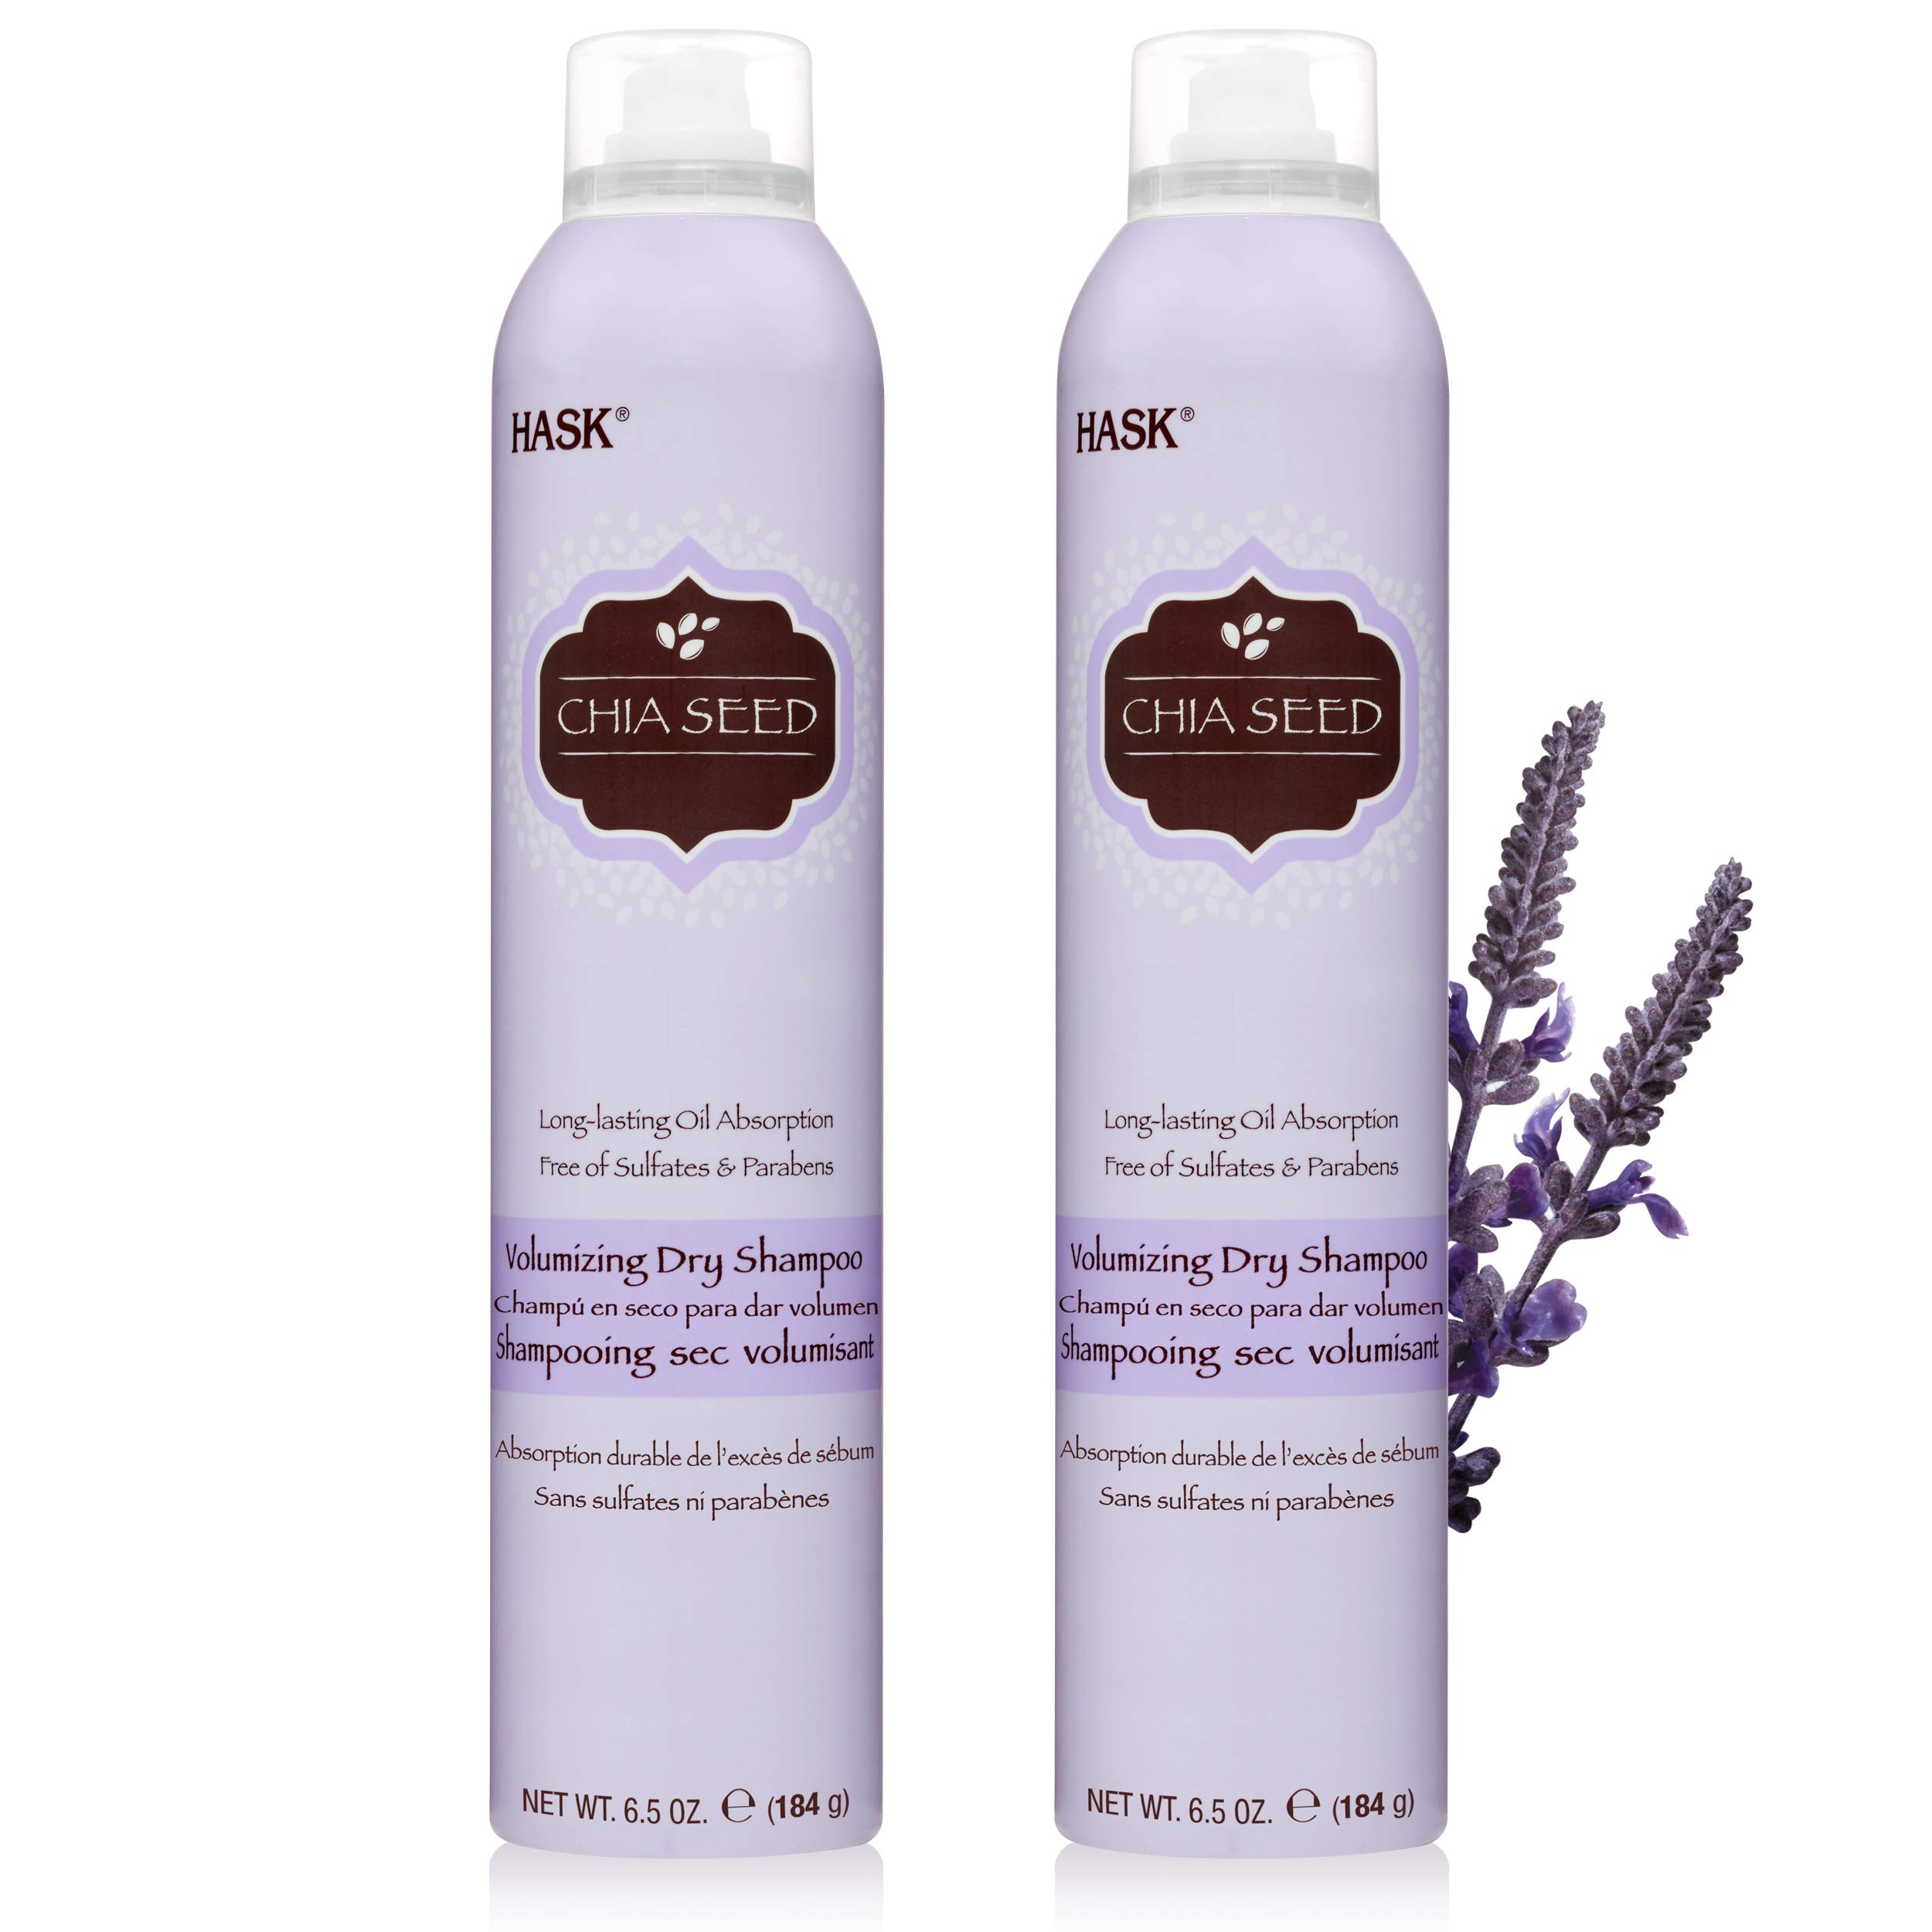 HASK Dry Shampoo Kits for all hair types, aluminum free, no sulfates, parabens, phthalates, gluten or artificial colors (Chia Seed, 6.5oz-Qty2)